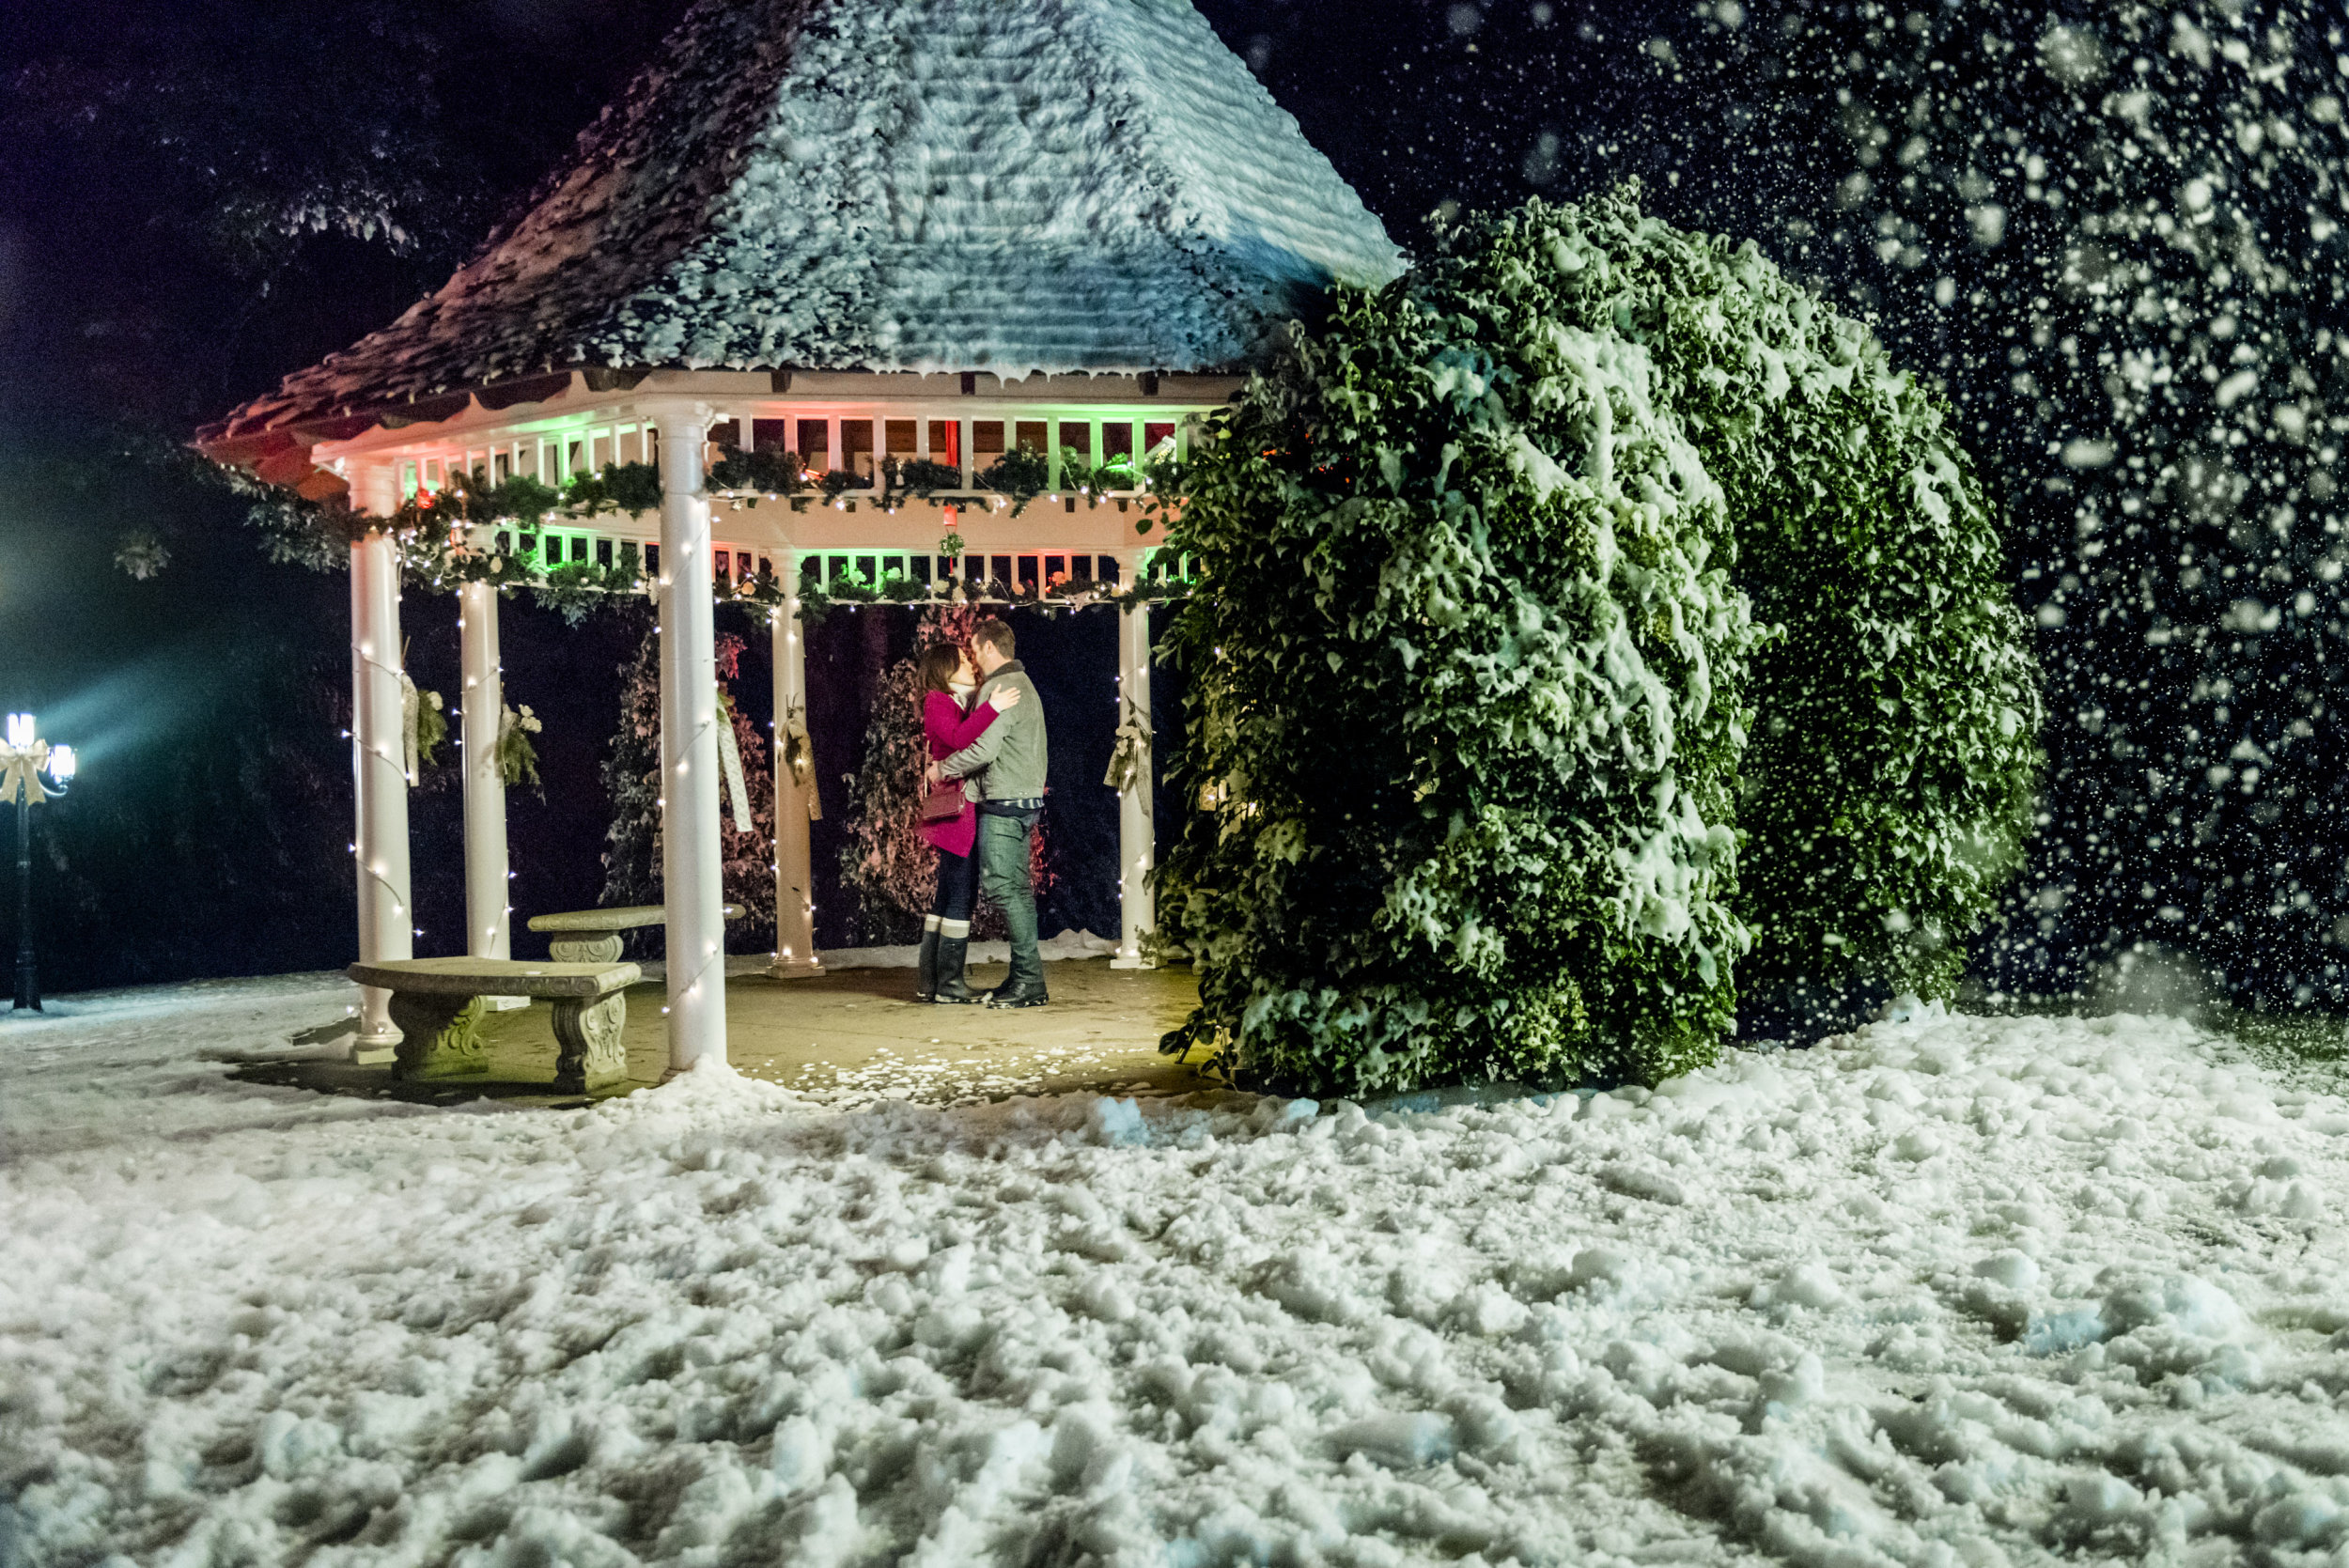 On Location - Engaging Father Christmas | Hallmark Movies and Mysteries